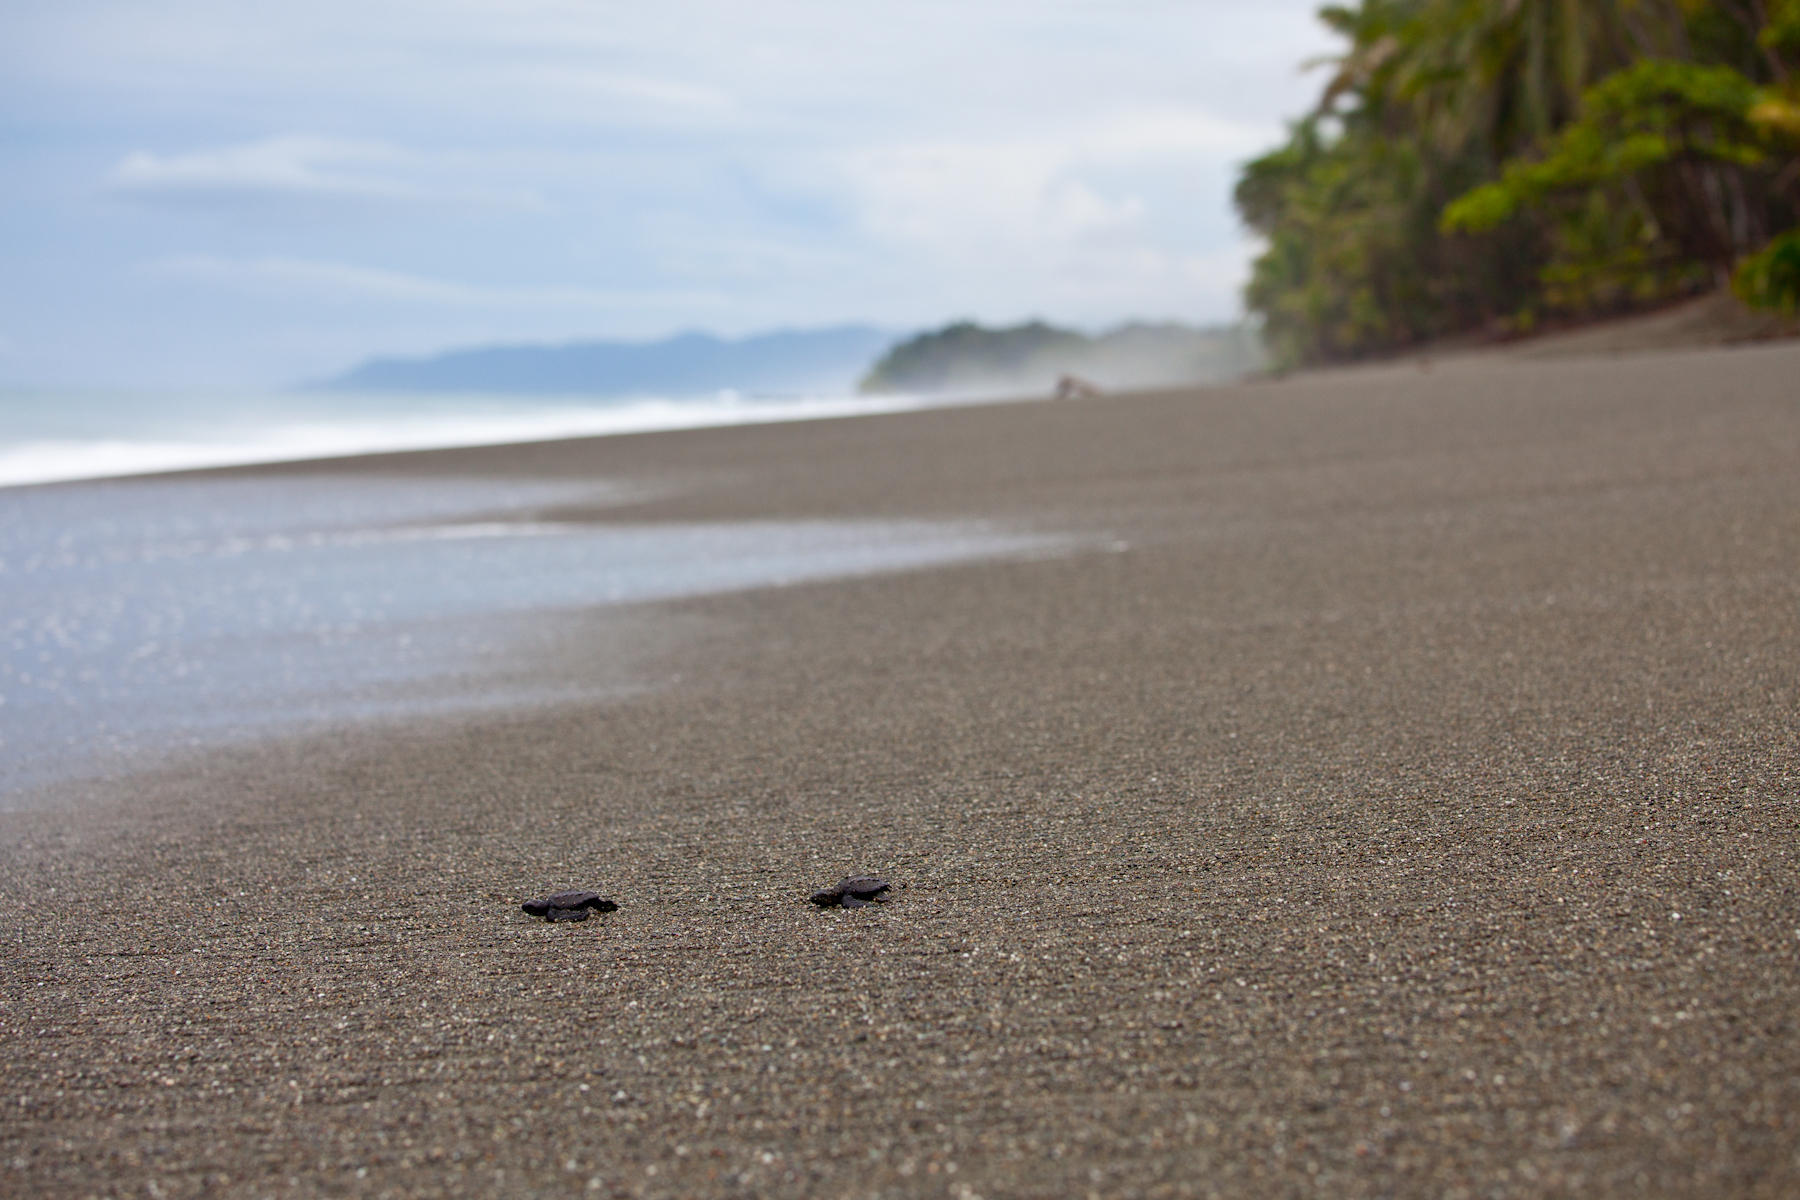 Newly hatched olive ridley turtles crawl to the Pacific Ocean at Playa Piró on Costa RIca's Osa Peninsula. © Brian J Hutchinson